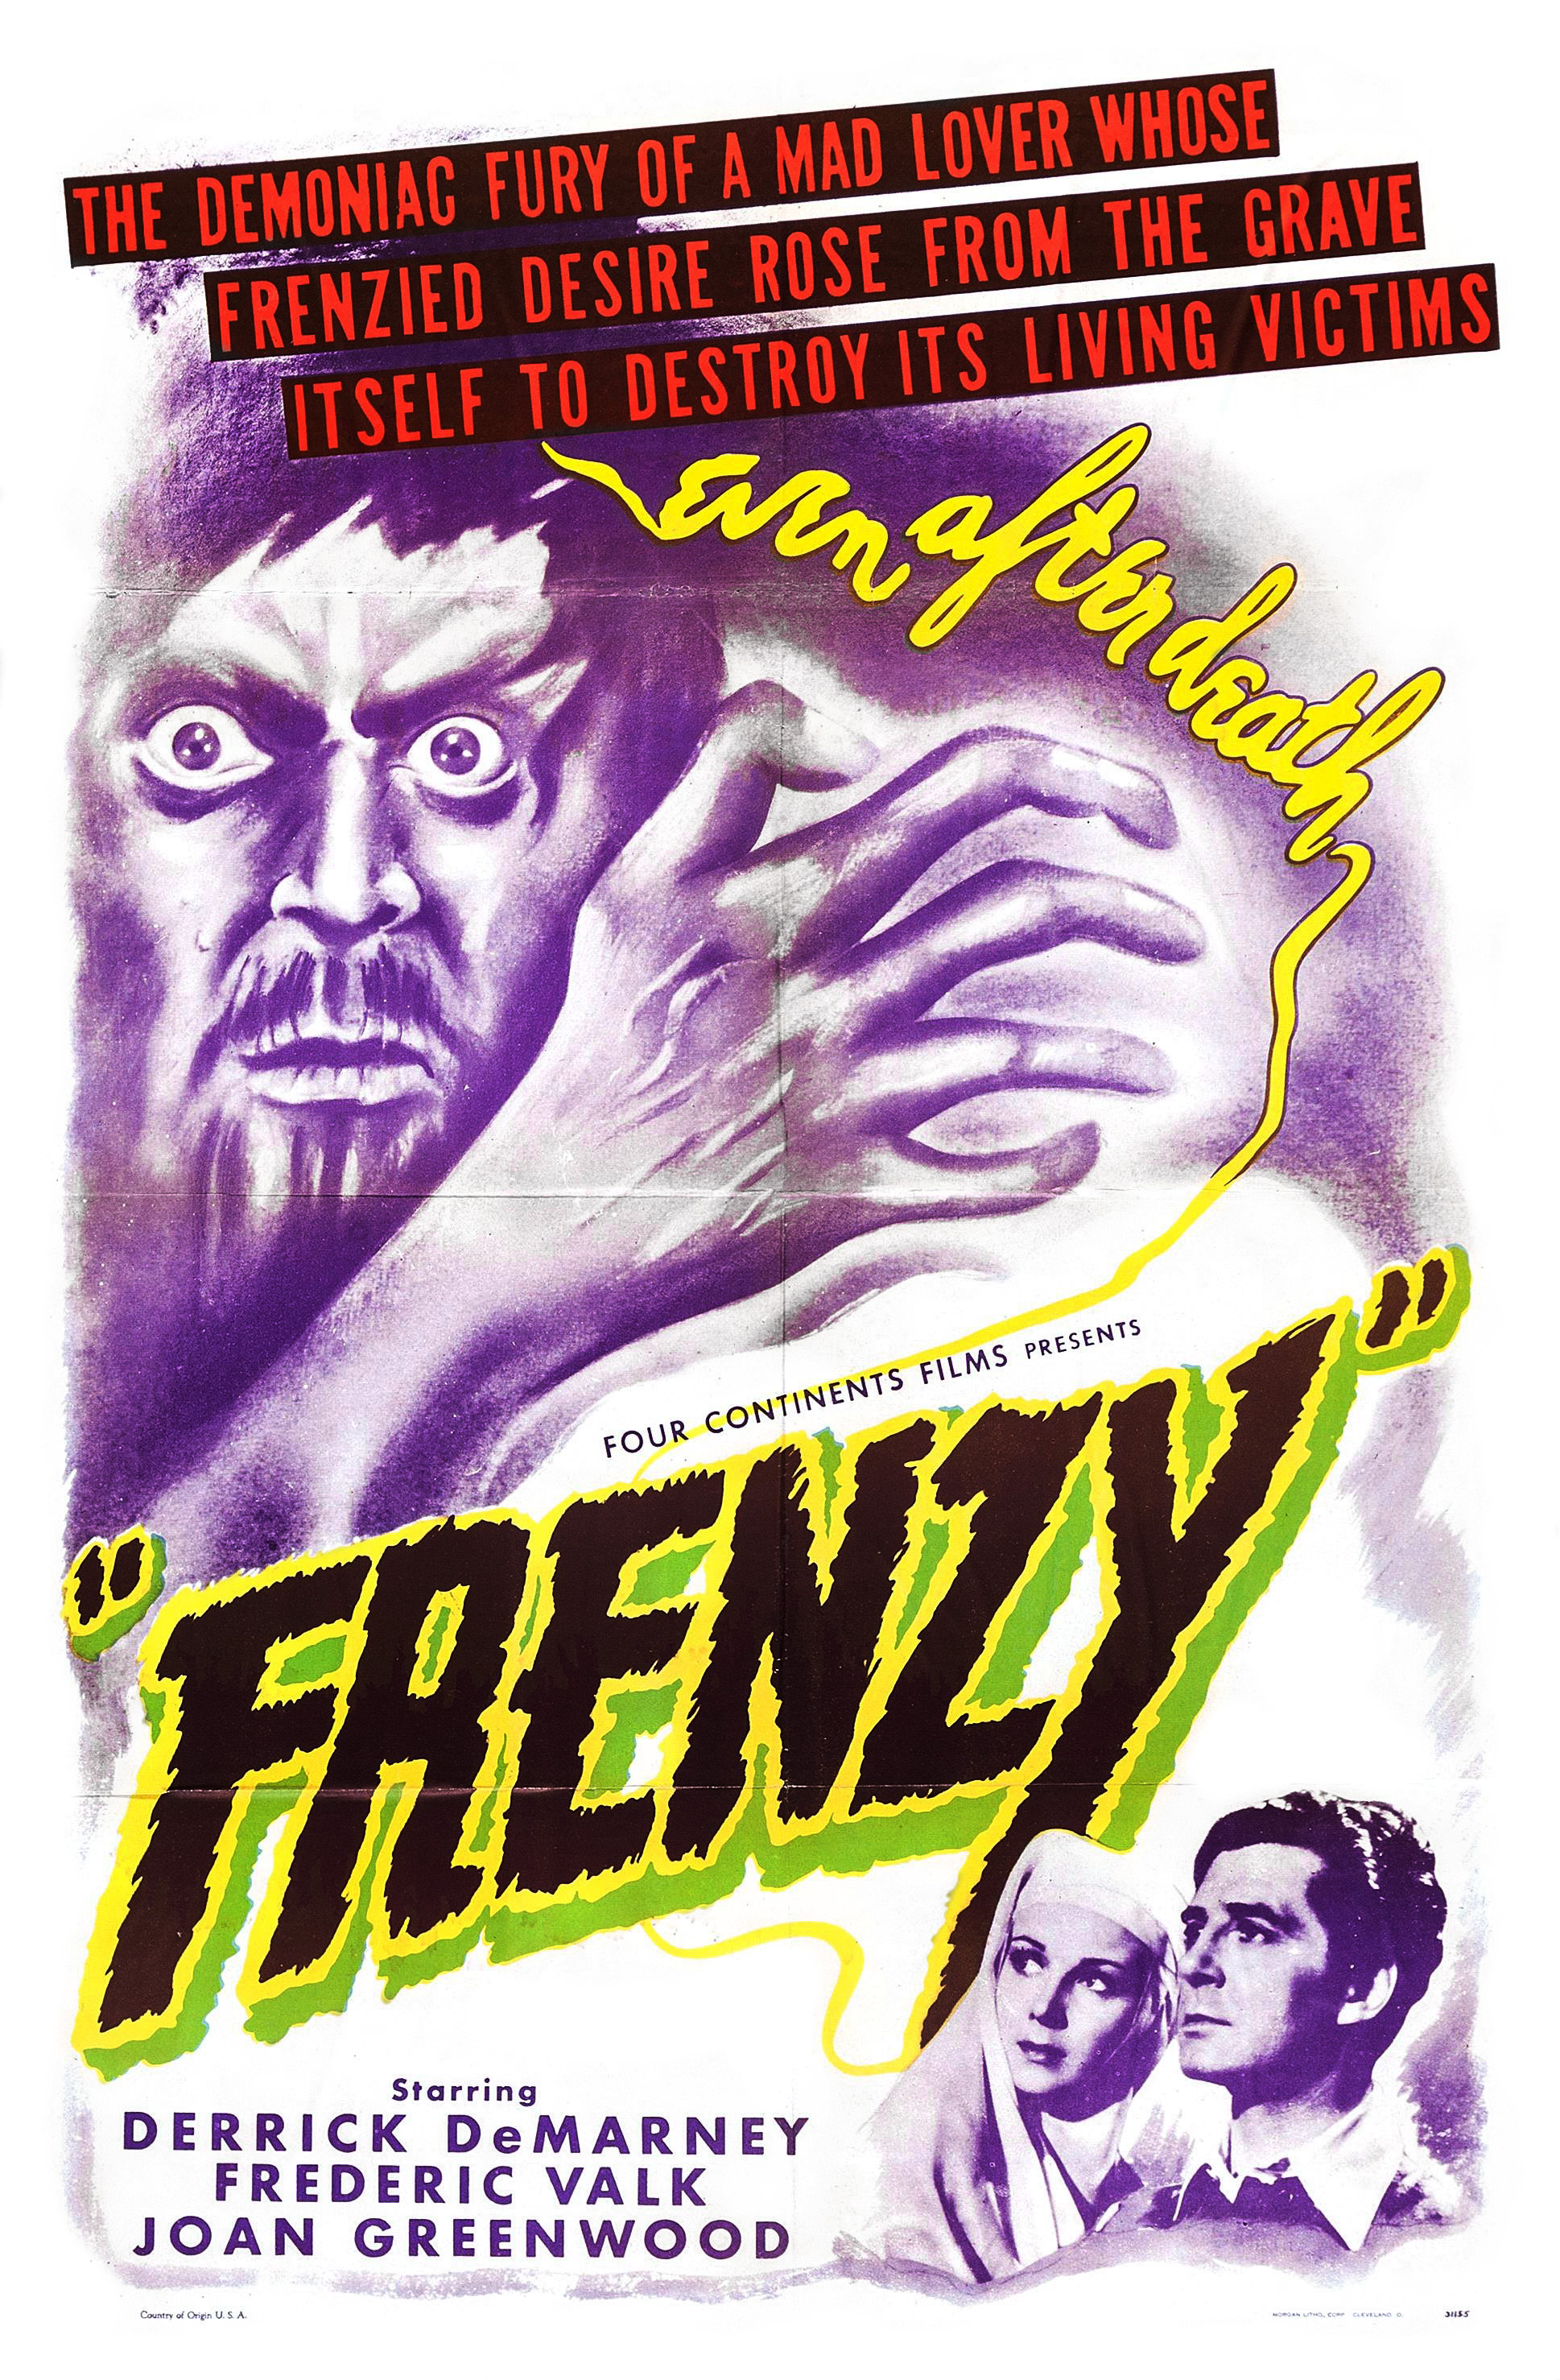 frenzy_1945_poster_01